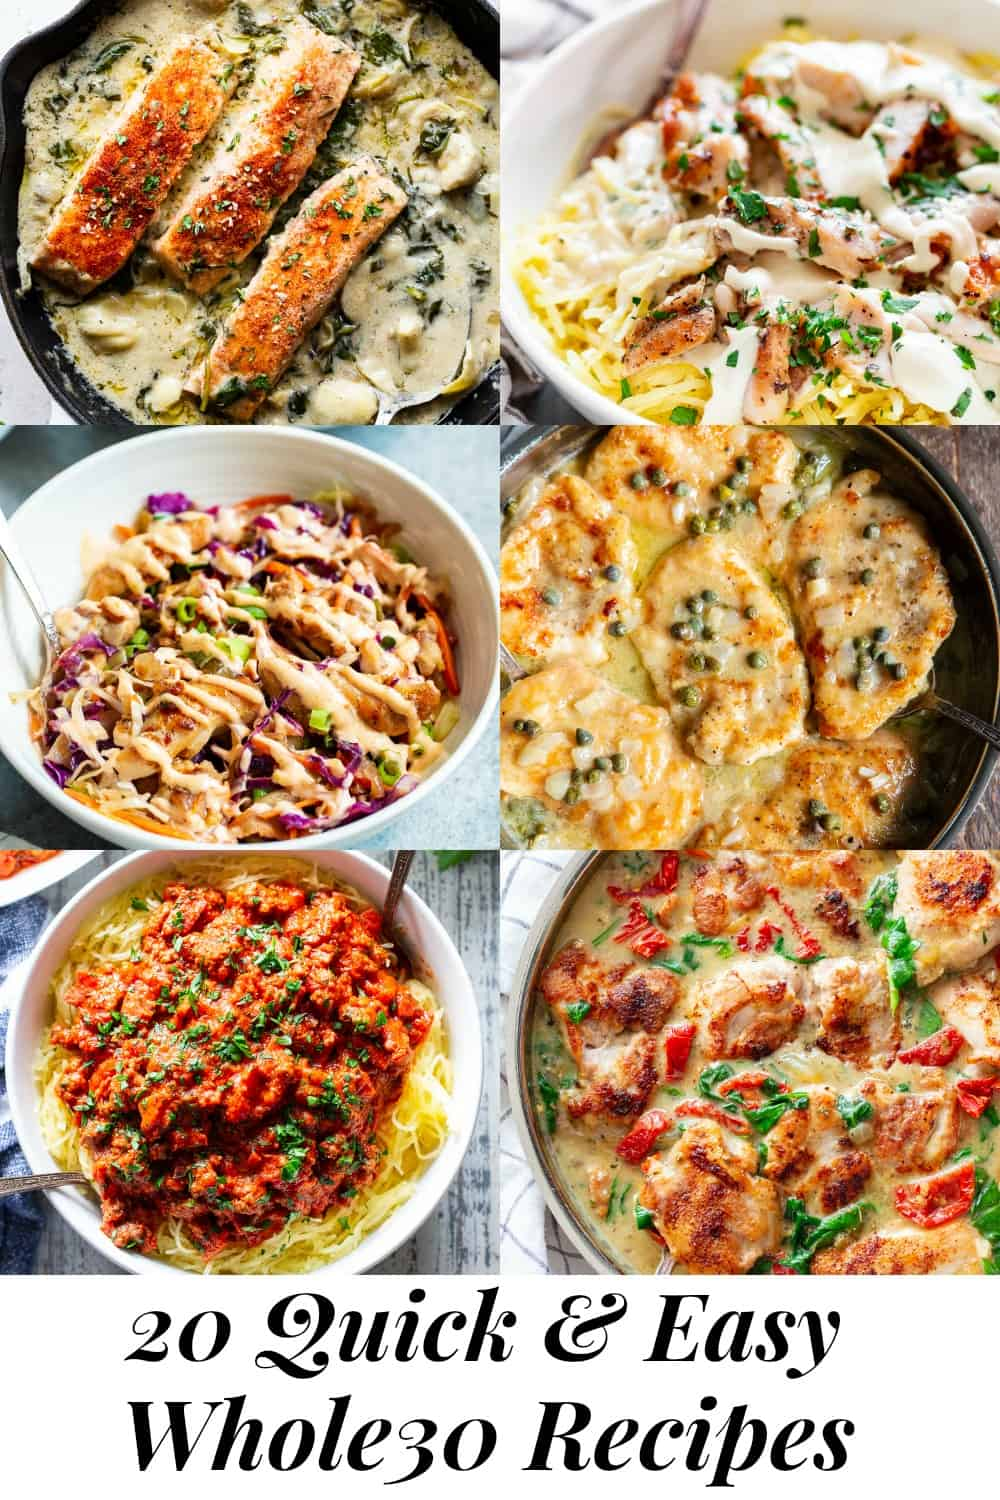 These 20 quick and easy healthy dinners are sure to make everyone in the family happy! Each recipe is paleo friendly, Whole30 compliant, low carb, and ready from start to finish in 30 minutes or less. If you're short on time you need these fast, healthy and super tasty dinner recipes in your life! #paleo #whole30 #keto #lowcarb #cleaneating